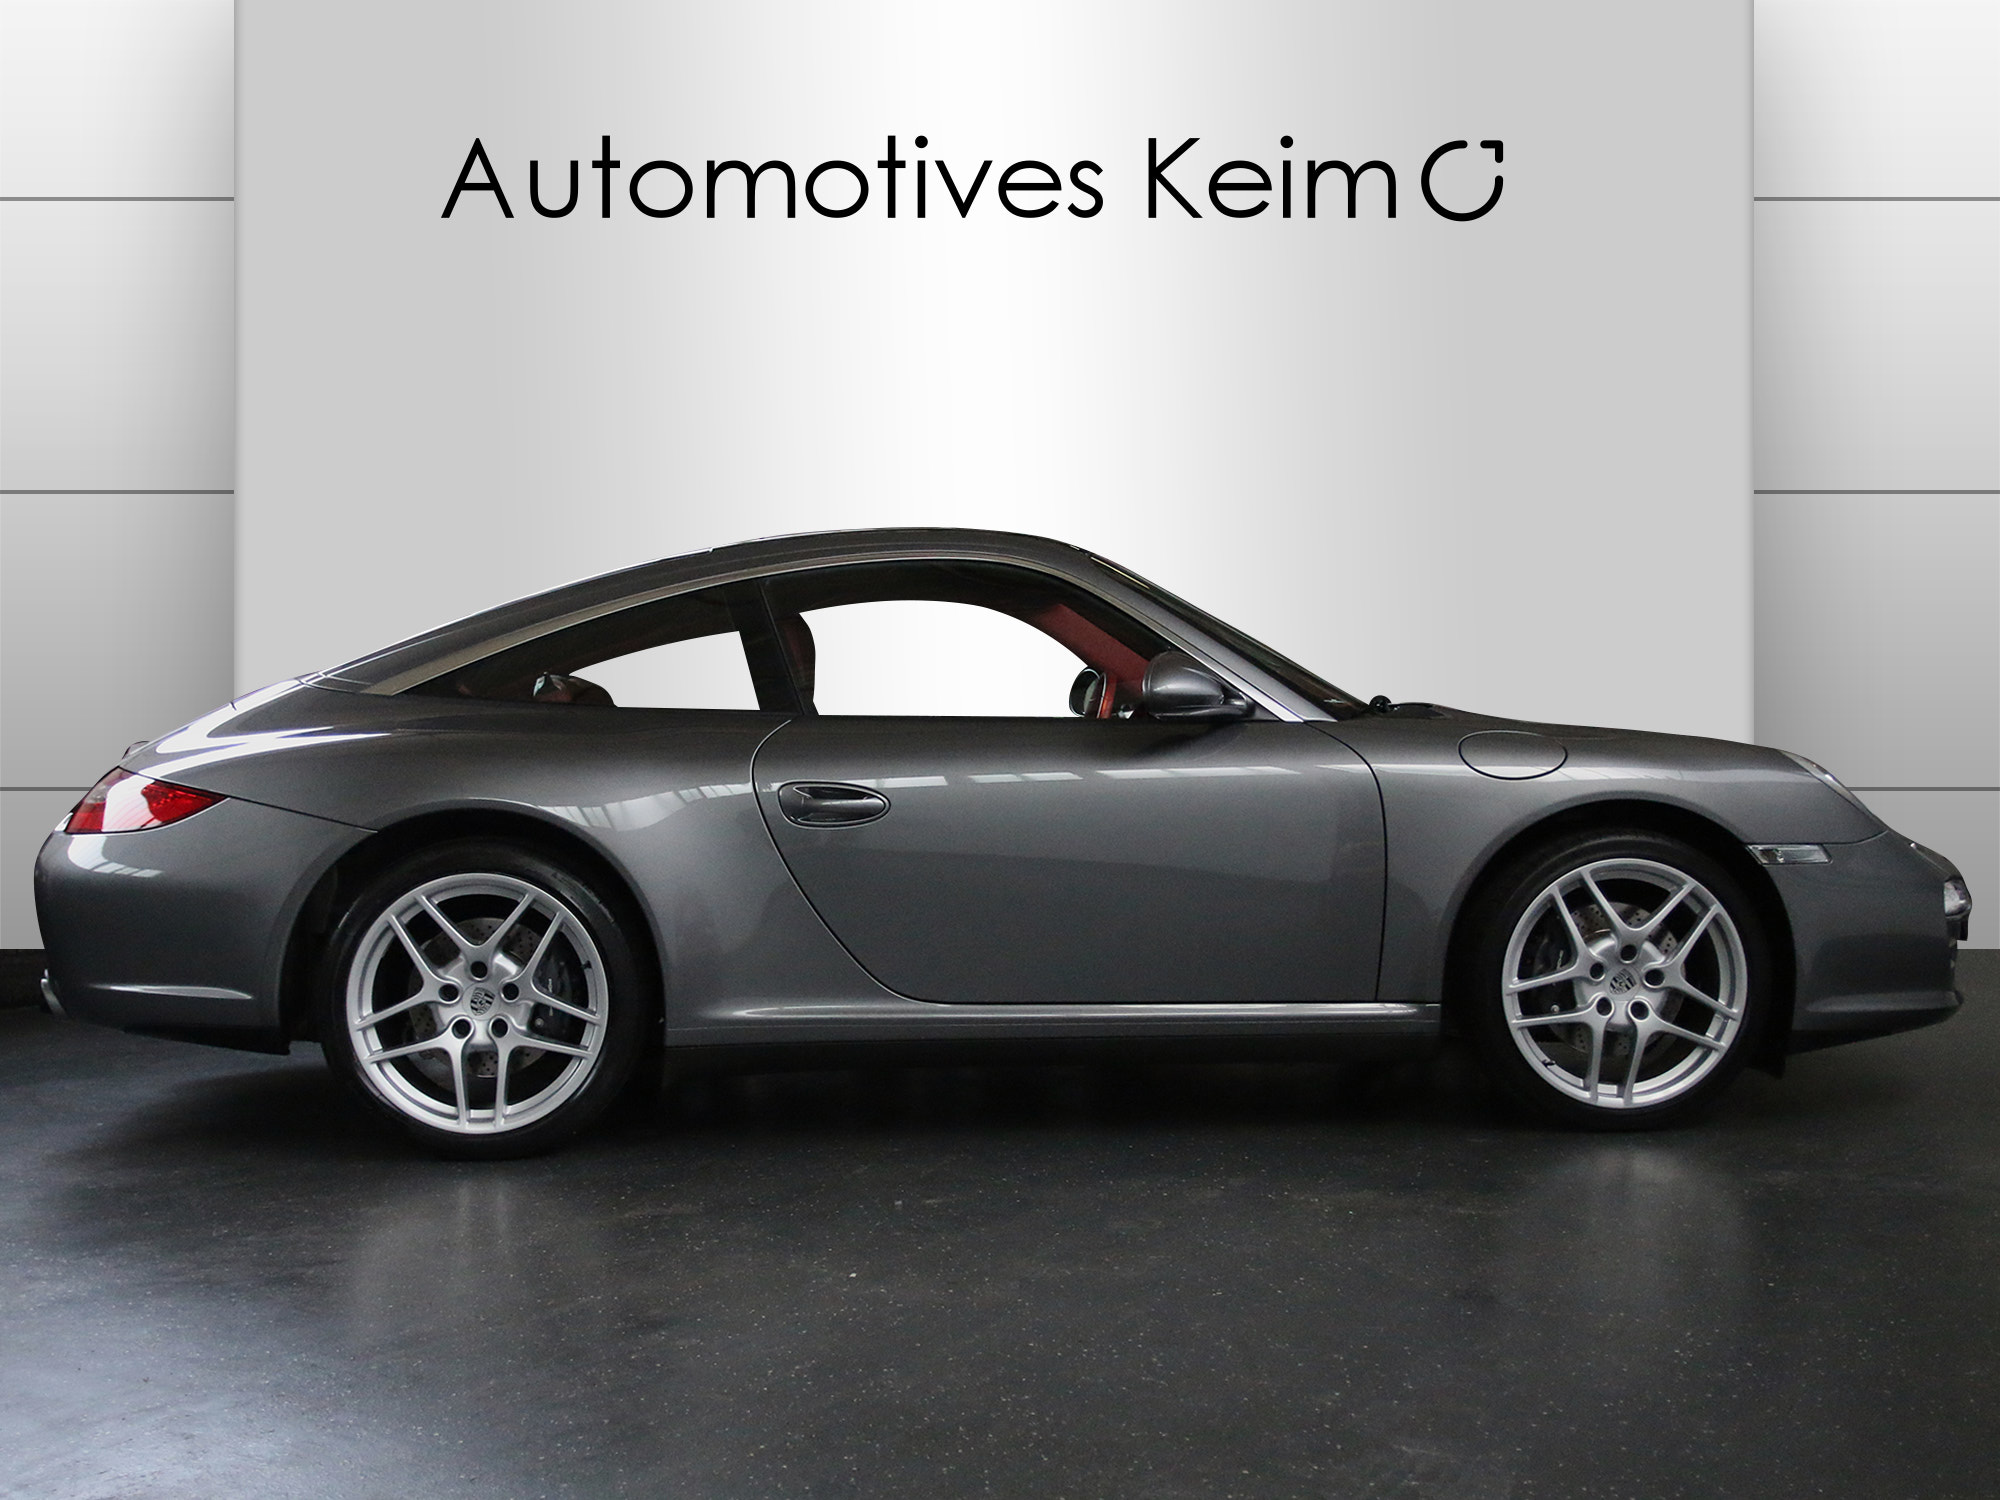 PORSCHE 911 997 Automotives Keim GmbH 63500 Seligenstadt Www.automotives Keim.de Oliver Keim 000027